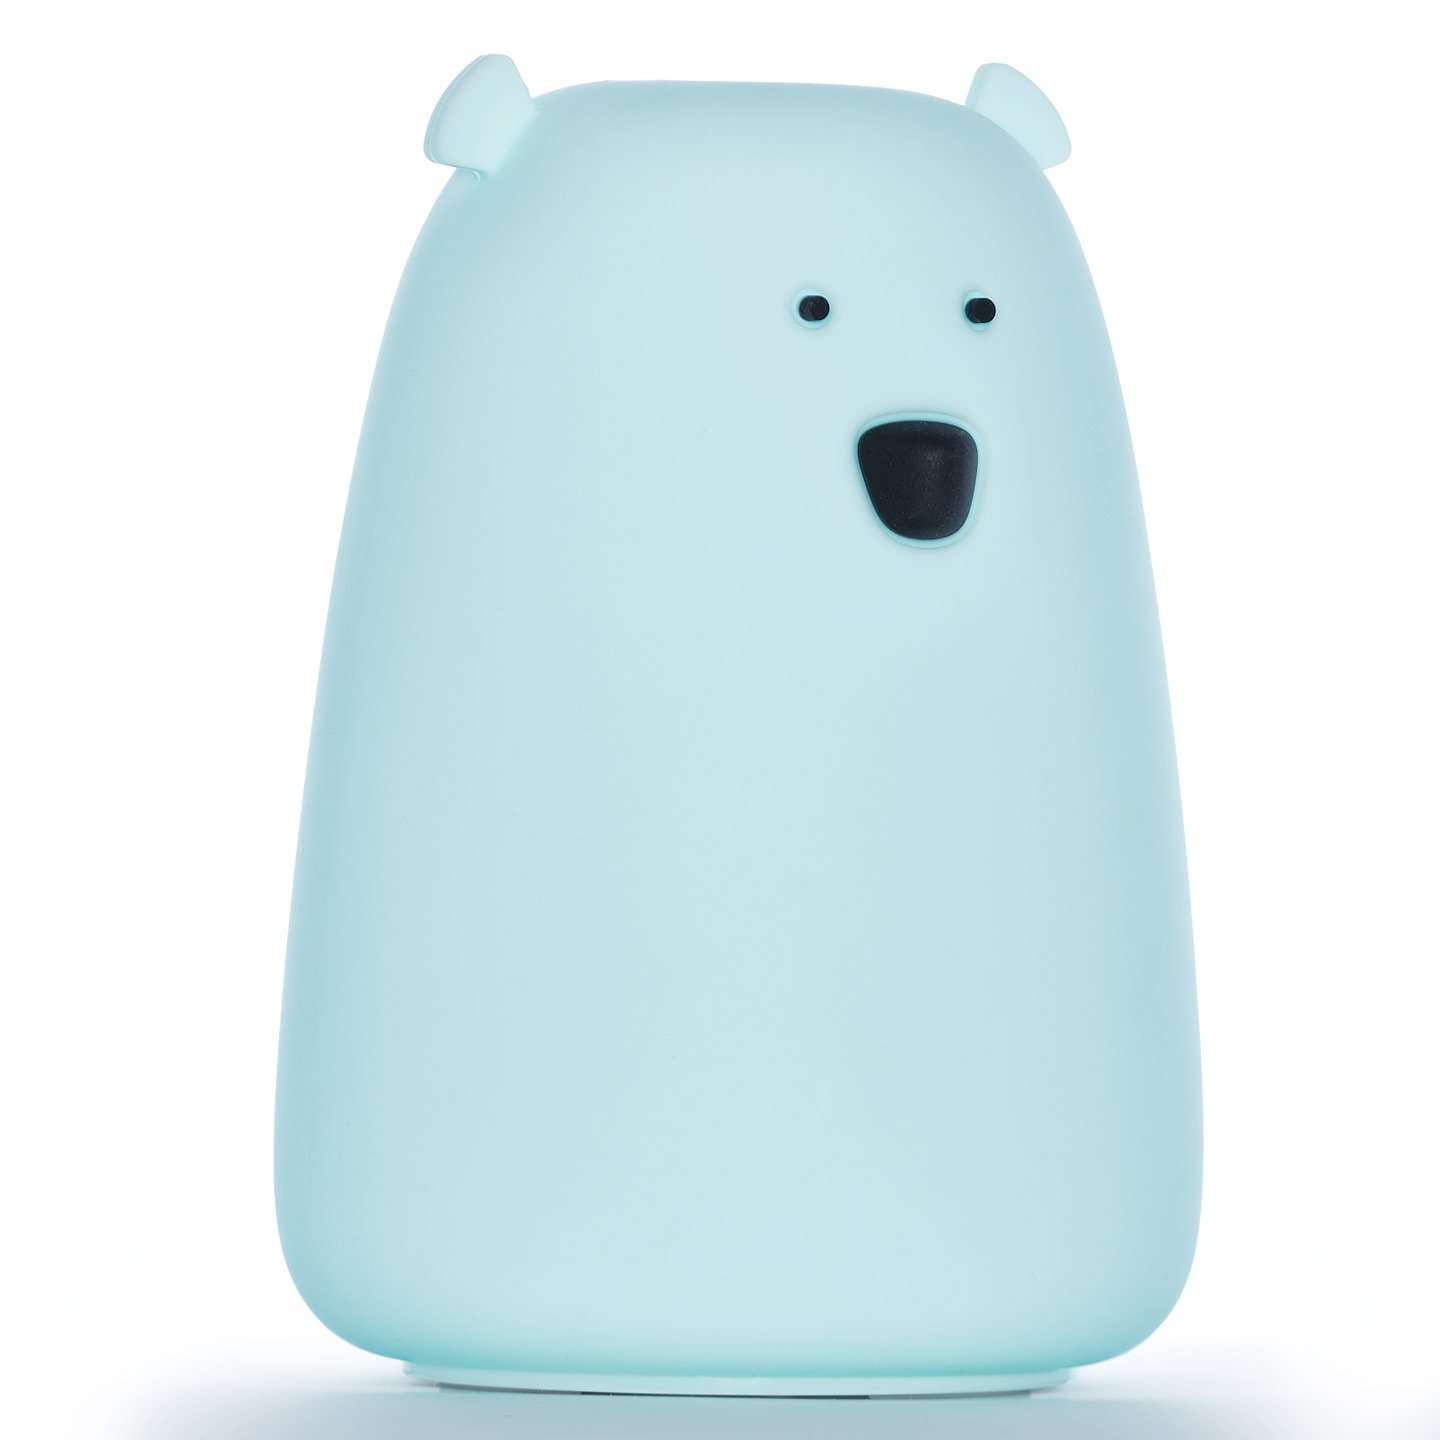 Moogi Color Changing Night Light for Kids - Baby Night Light Bear Lamp, Rechargeable LED Nightlight, Soft Silicone Blue Night Light by Moogi